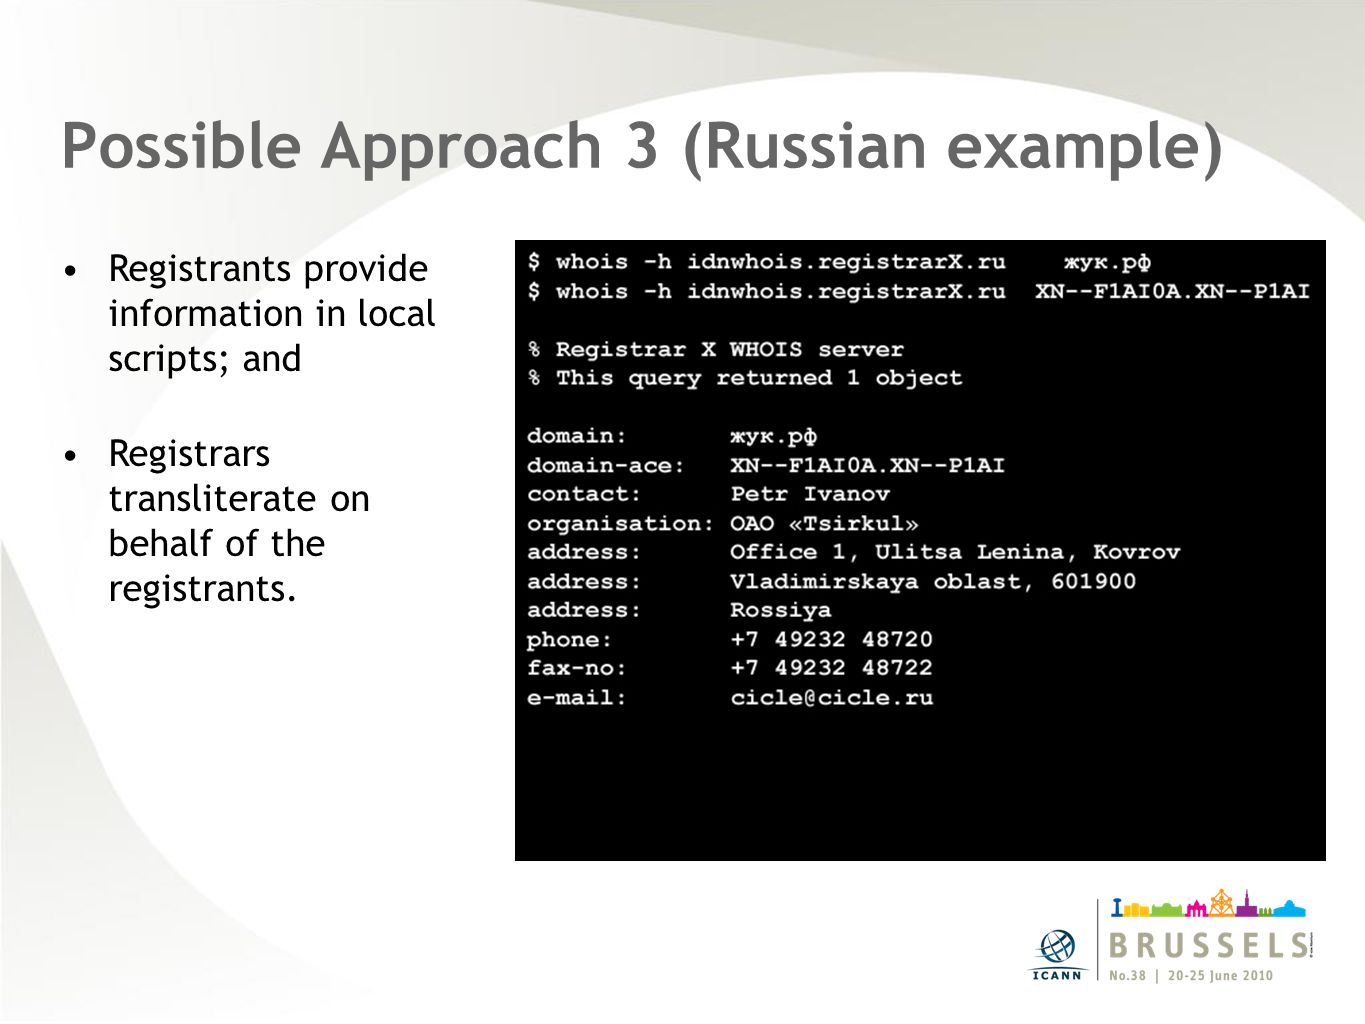 Possible Approach 3 (Russian example) Registrants provide information in local scripts; and Registrars transliterate on behalf of the registrants.